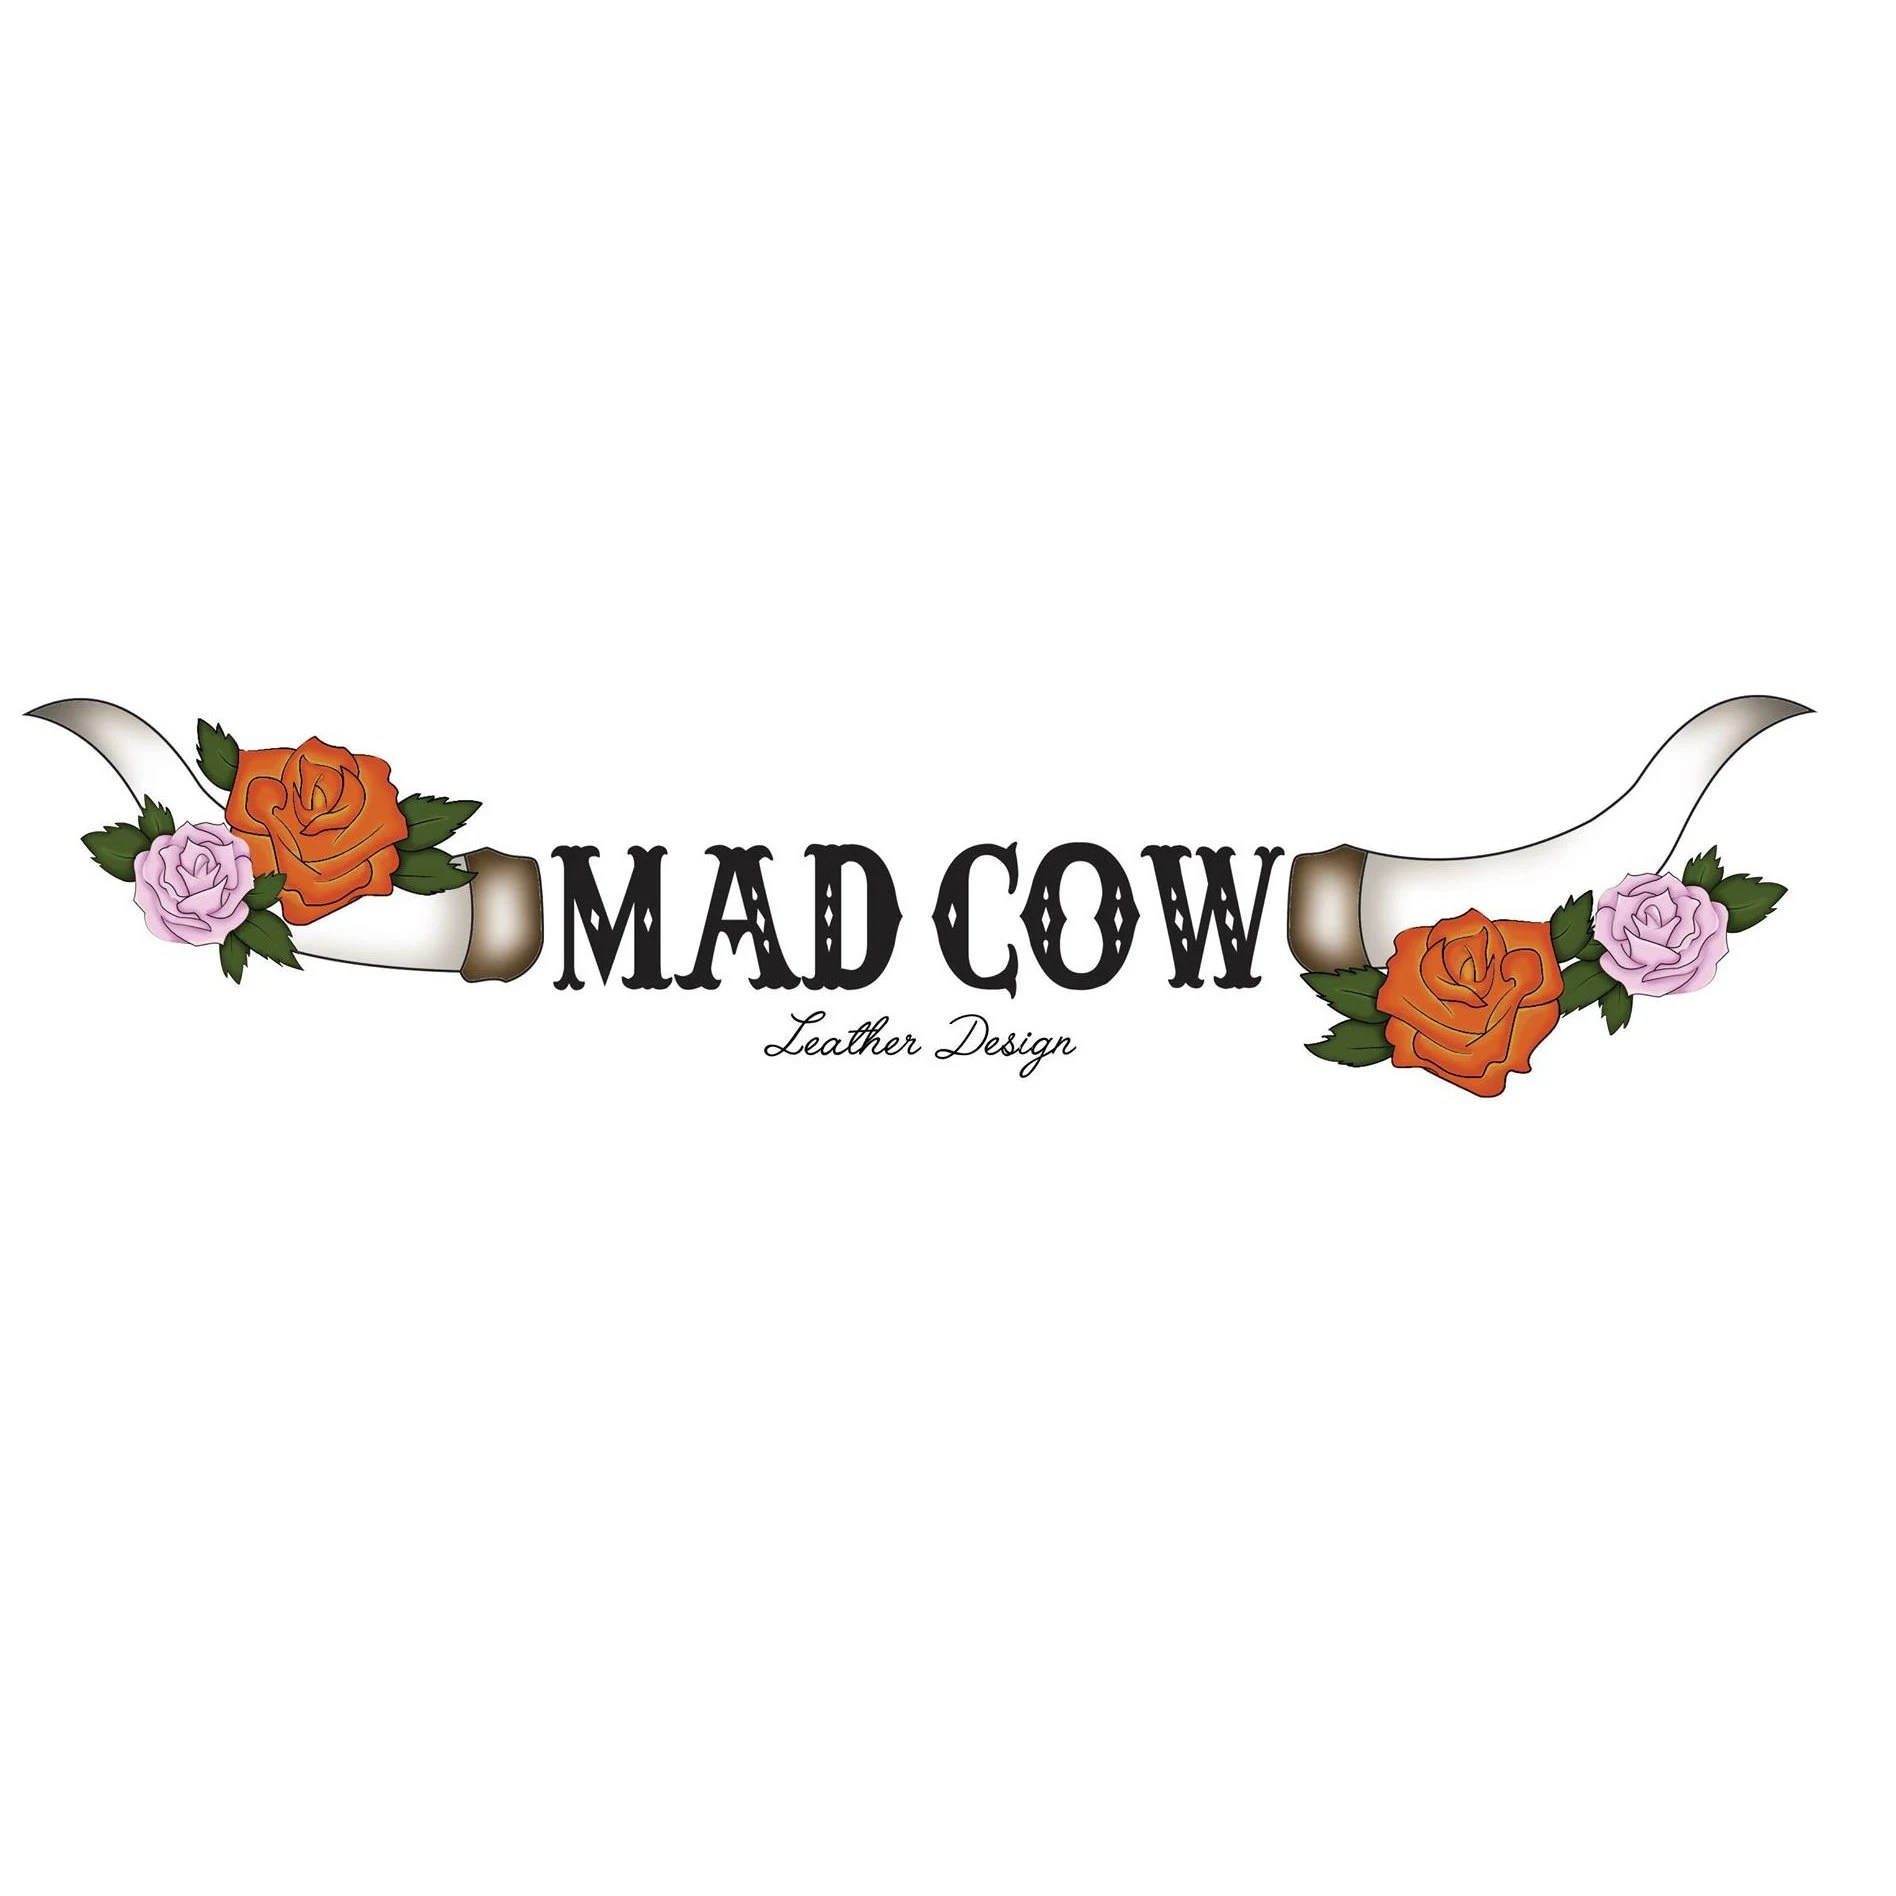 Mad Cow Leather Design by MadCowLeatherDesign on Etsy